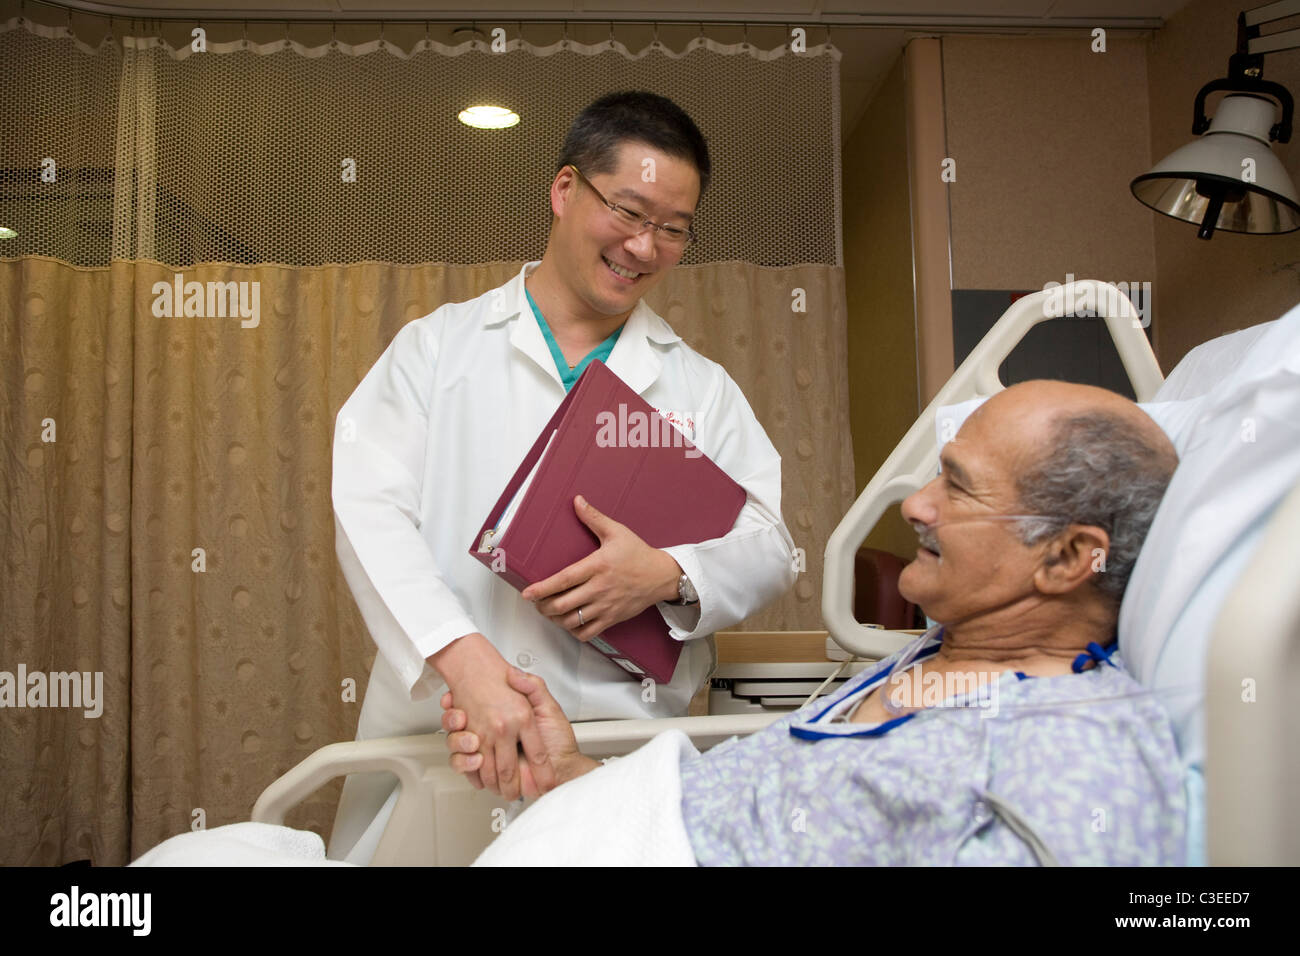 Doctor reassures older patient that he is doing well after surgery. - Stock Image